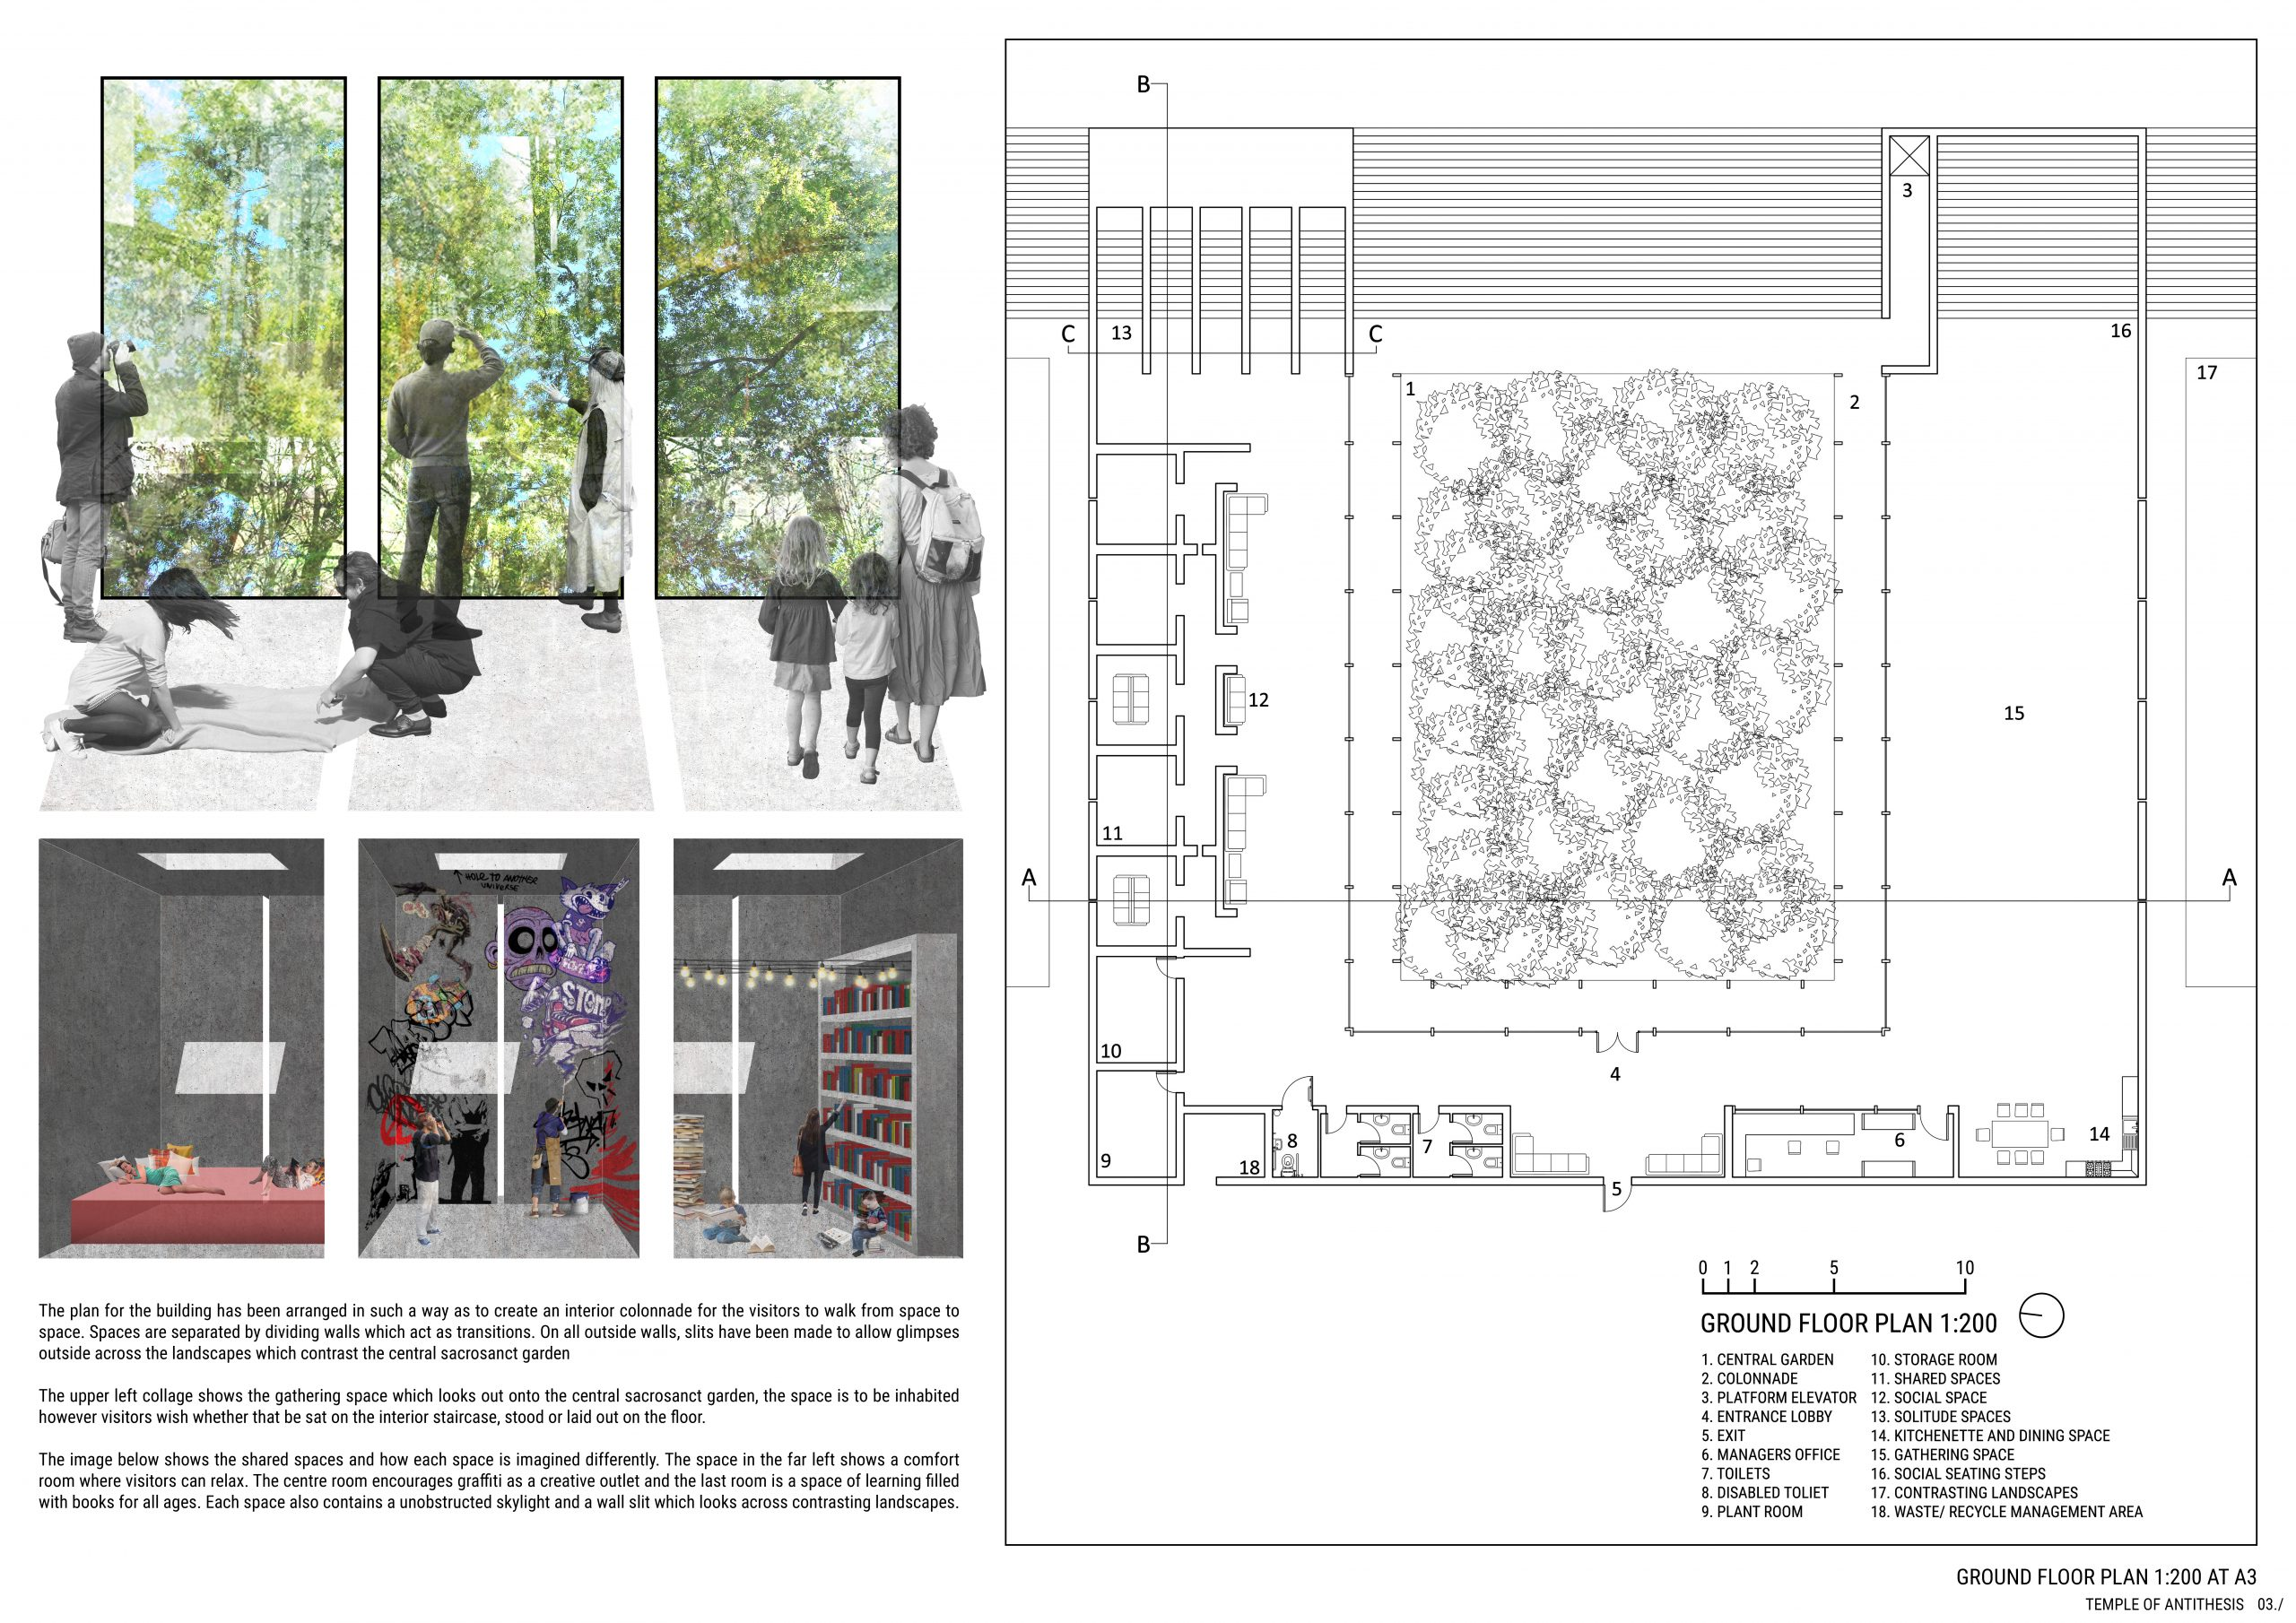 Interior Spaces and Floor Plan. 03./ Image